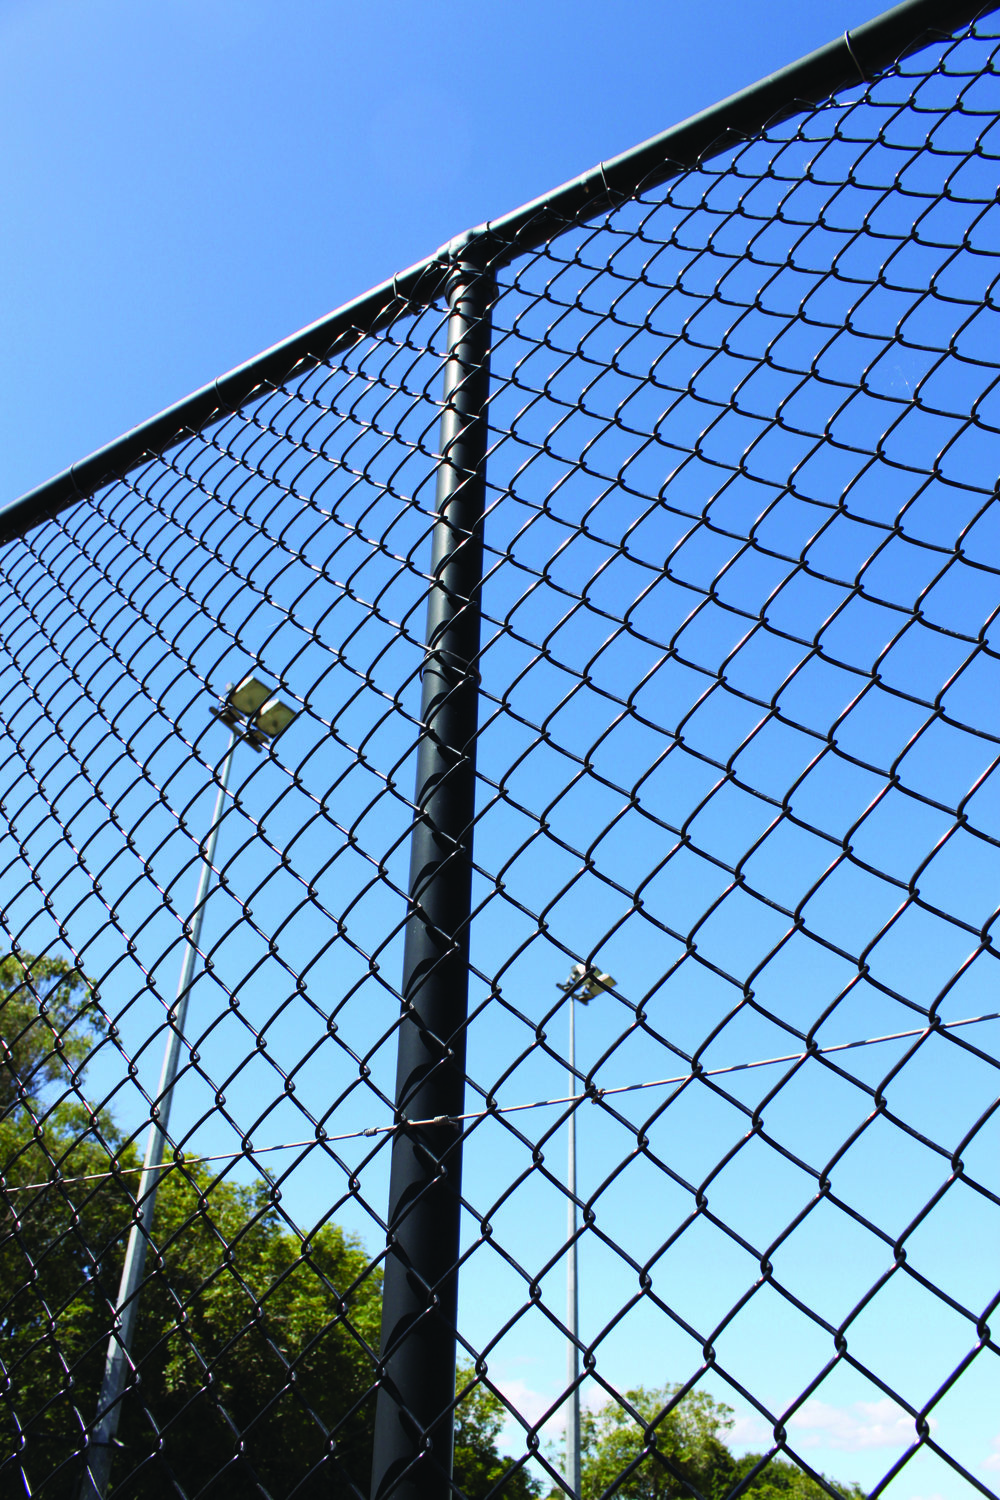 Pipe Mesh Chainlink Fencing Hampden Fence